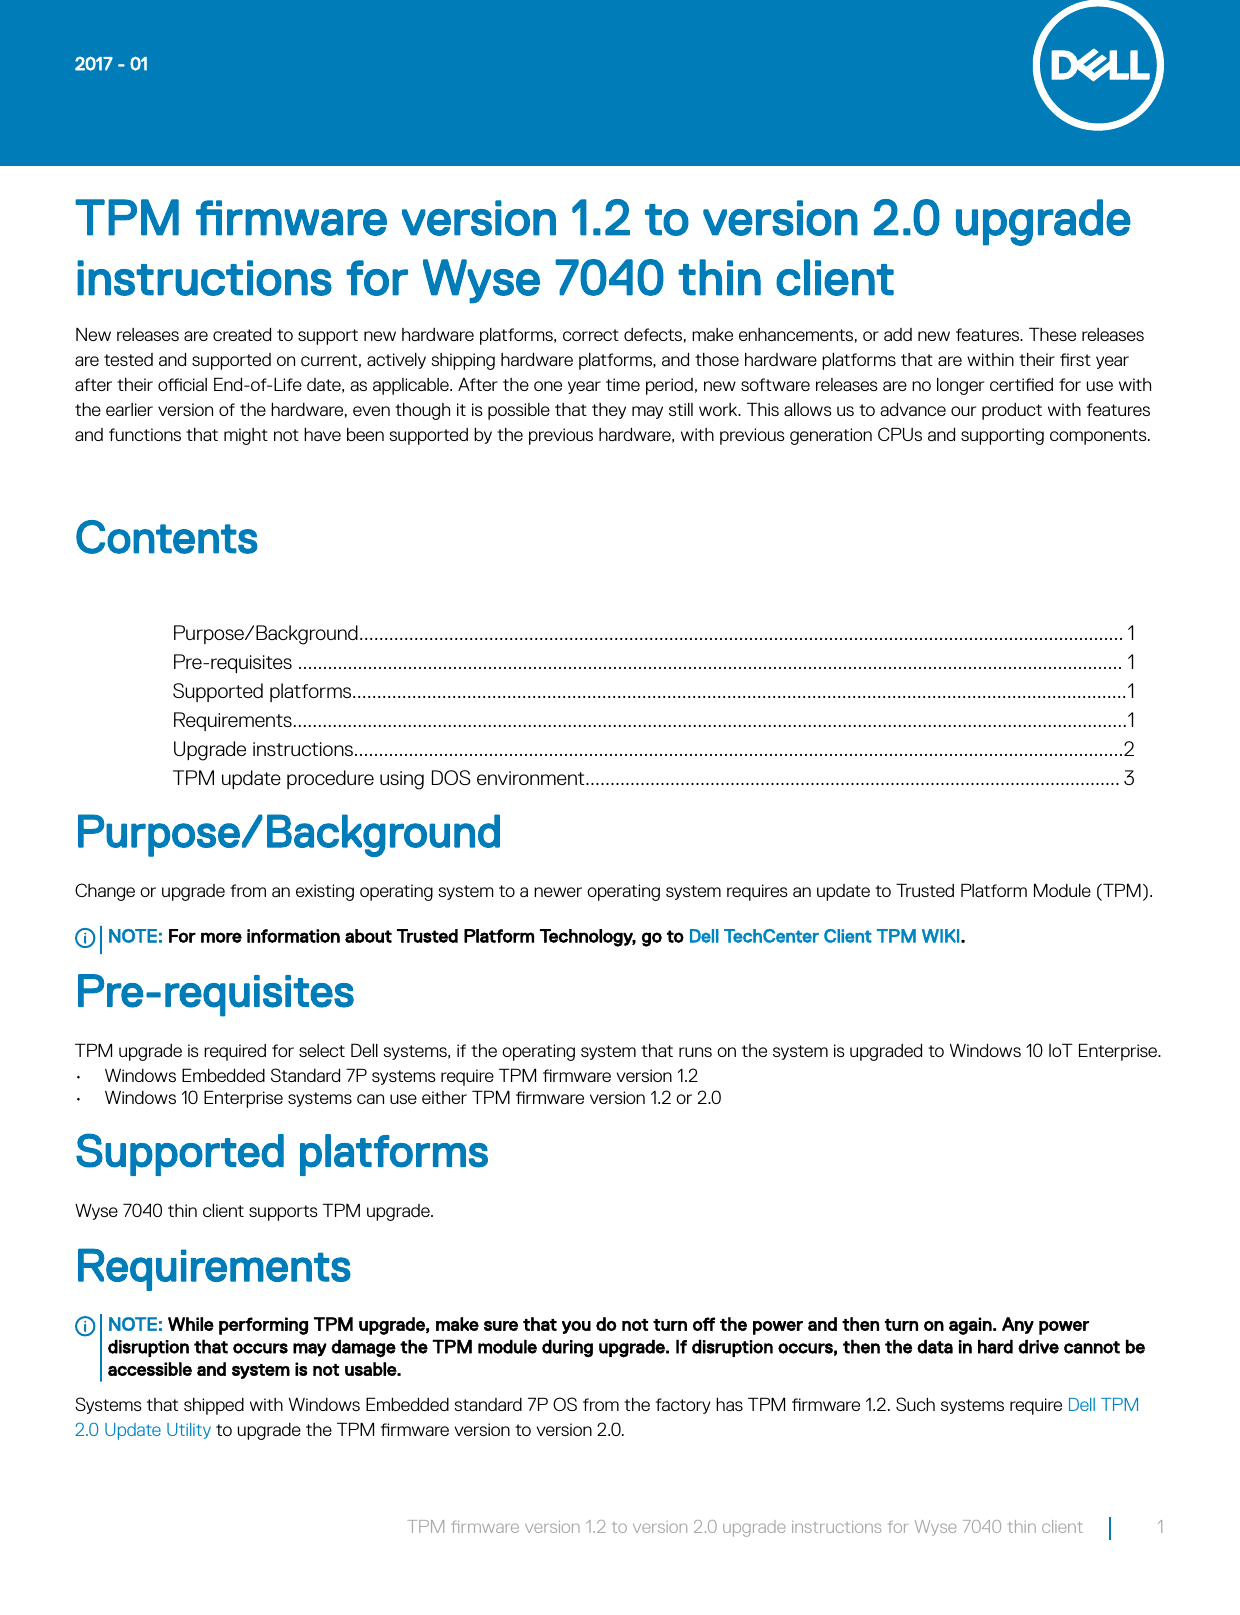 Tpm guide tpm reset quick reference guide tpms array dell wyse 7040 thin client tpm firmware version 1 2 to 2 0 upgrade fandeluxe Image collections